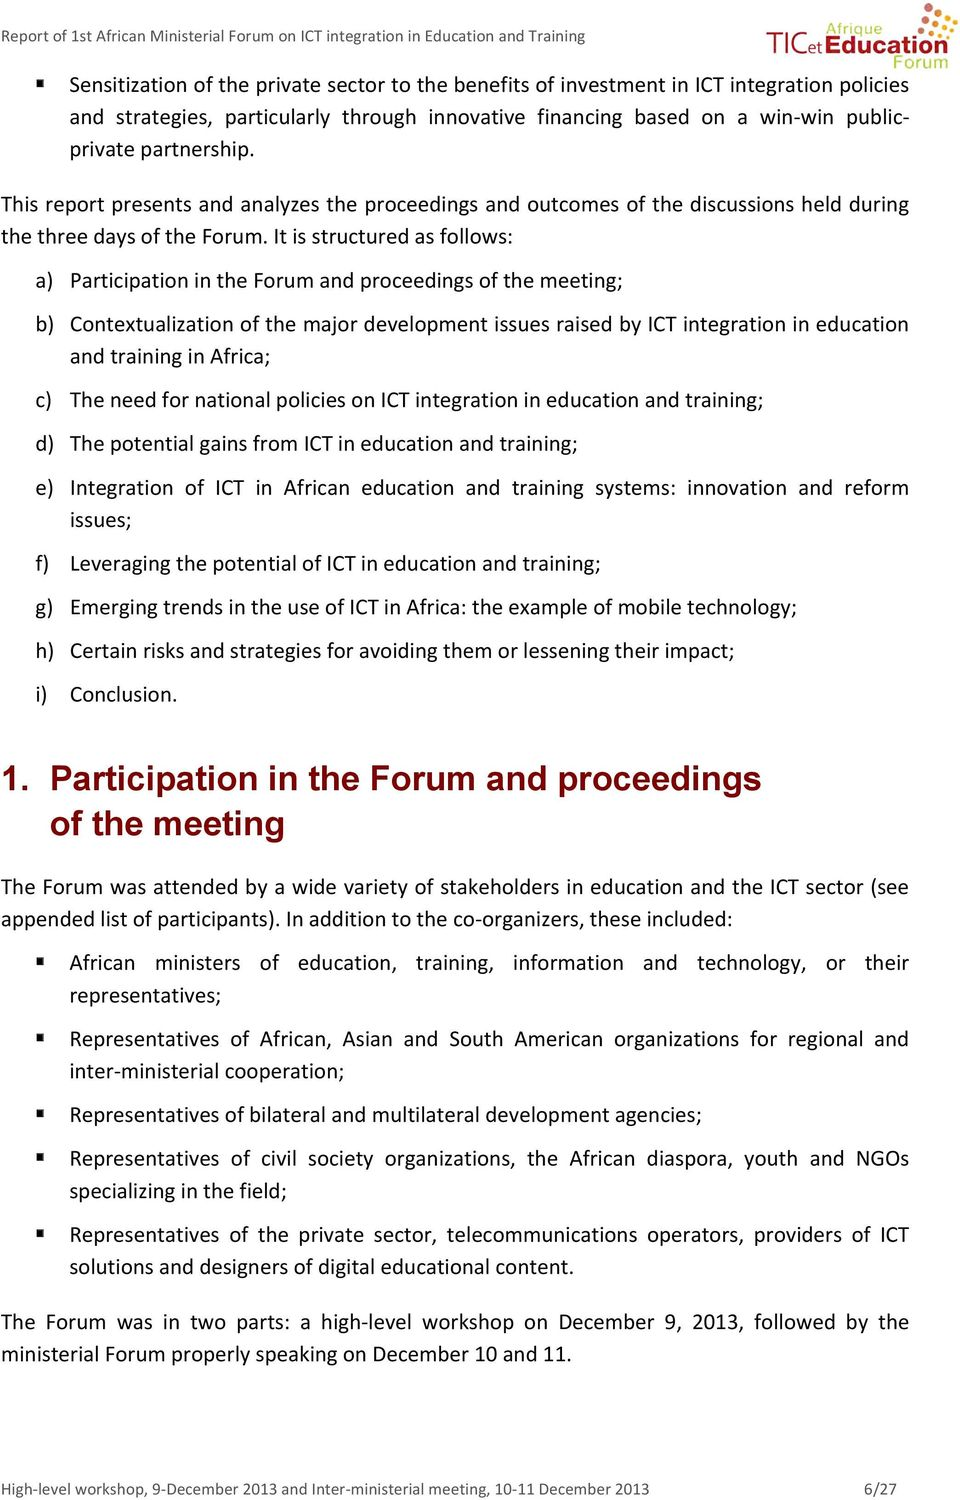 It is structured as follows: a) Participation in the Forum and proceedings of the meeting; b) Contextualization of the major development issues raised by ICT integration in education and training in